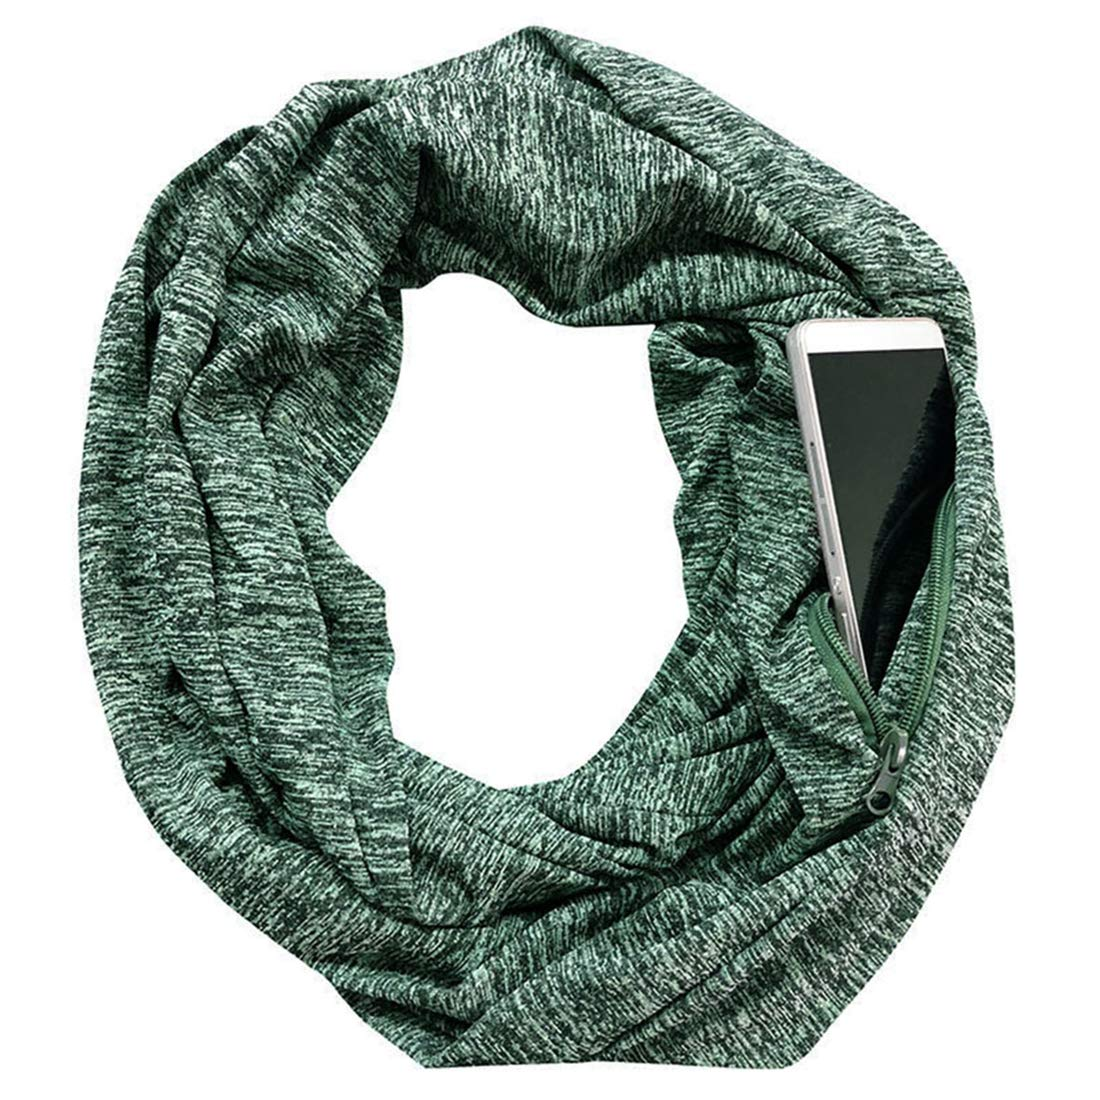 Women's Infinity Scarf with Pocket Fashion Scarves Lightweight Travel Scarf (Black)